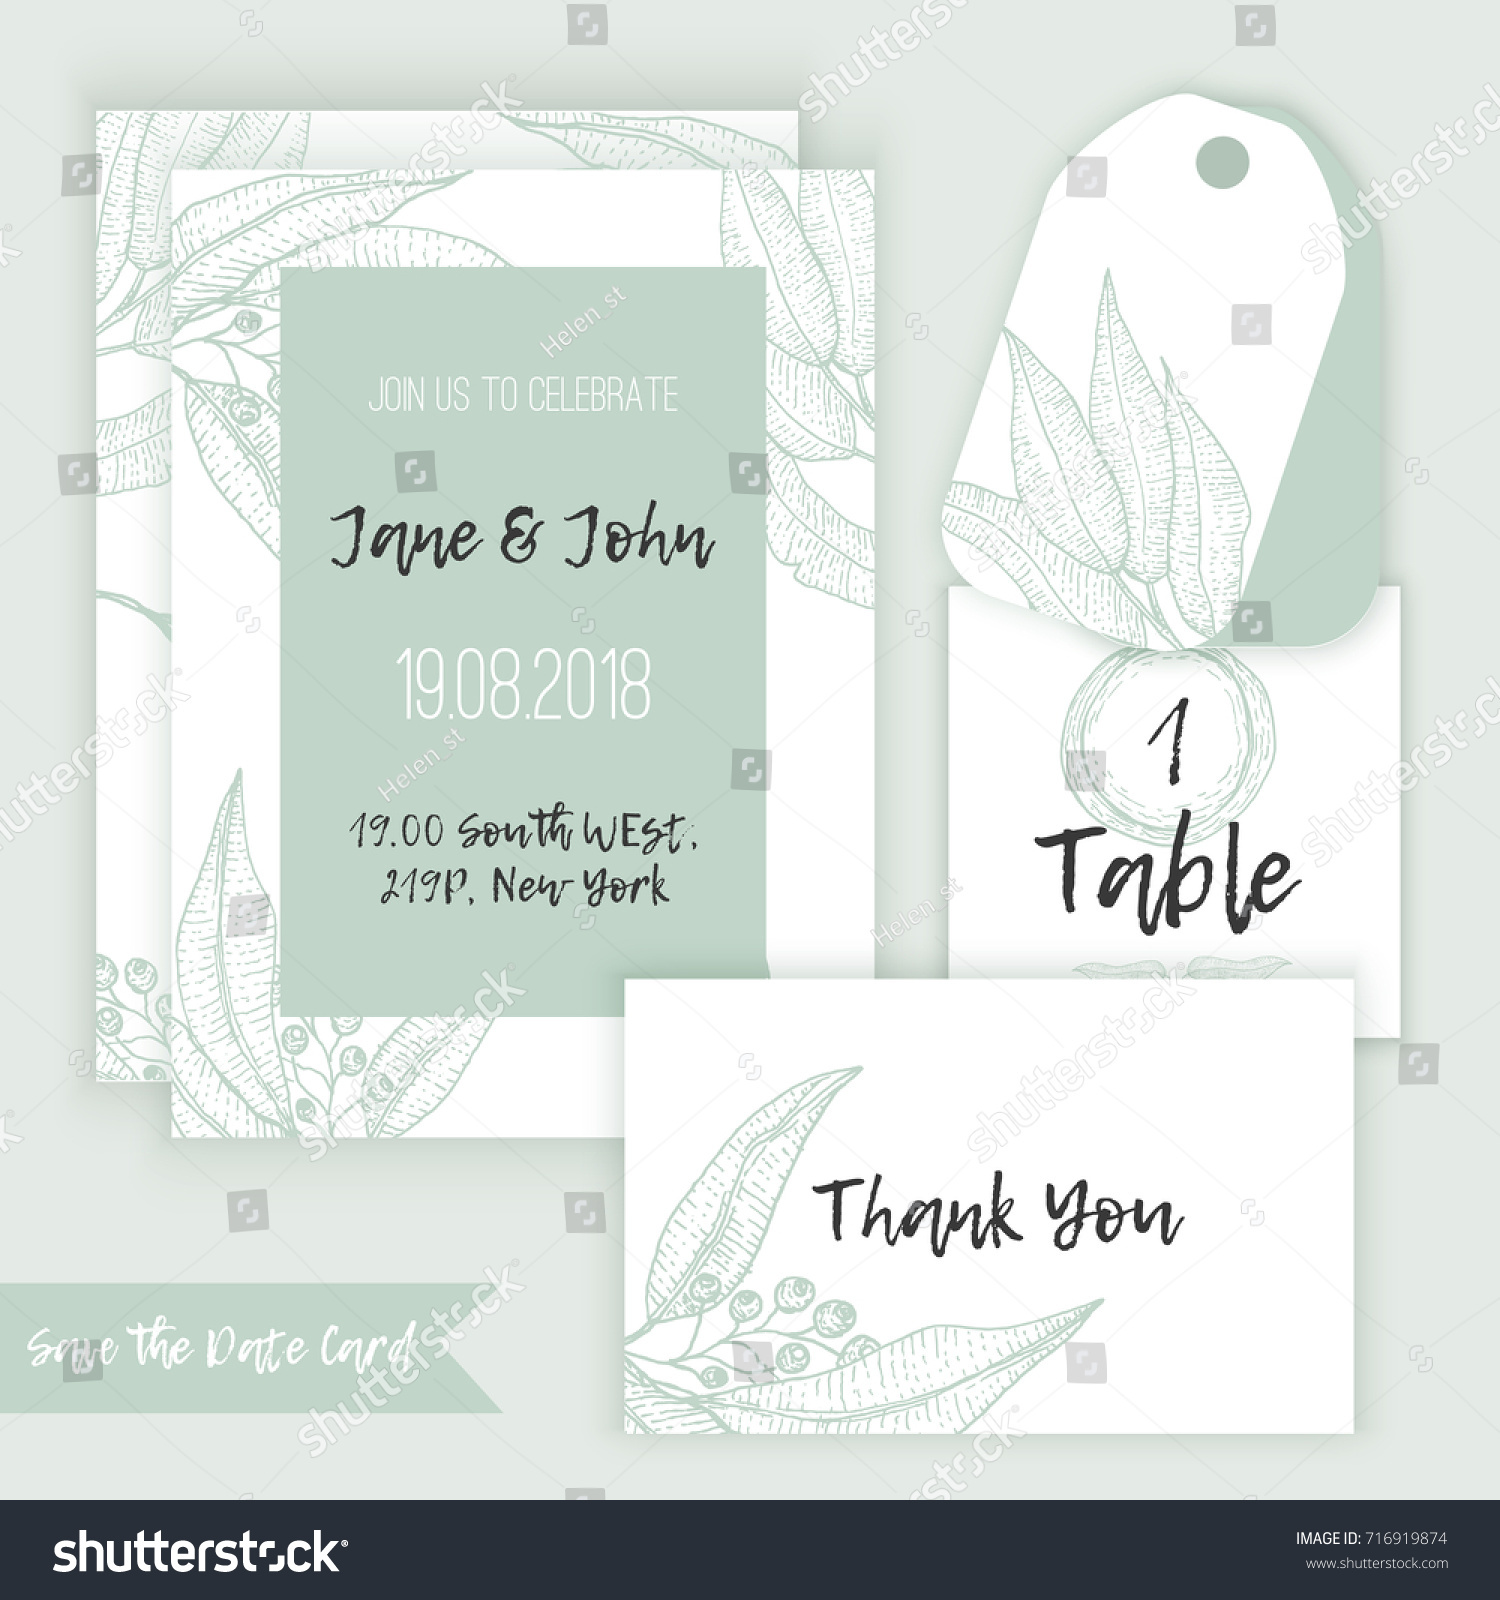 Rustic wedding decoration template decorate eucalyptus stock vector rustic wedding decoration template decorate with eucalyptus branches in sketch style with menu table junglespirit Choice Image